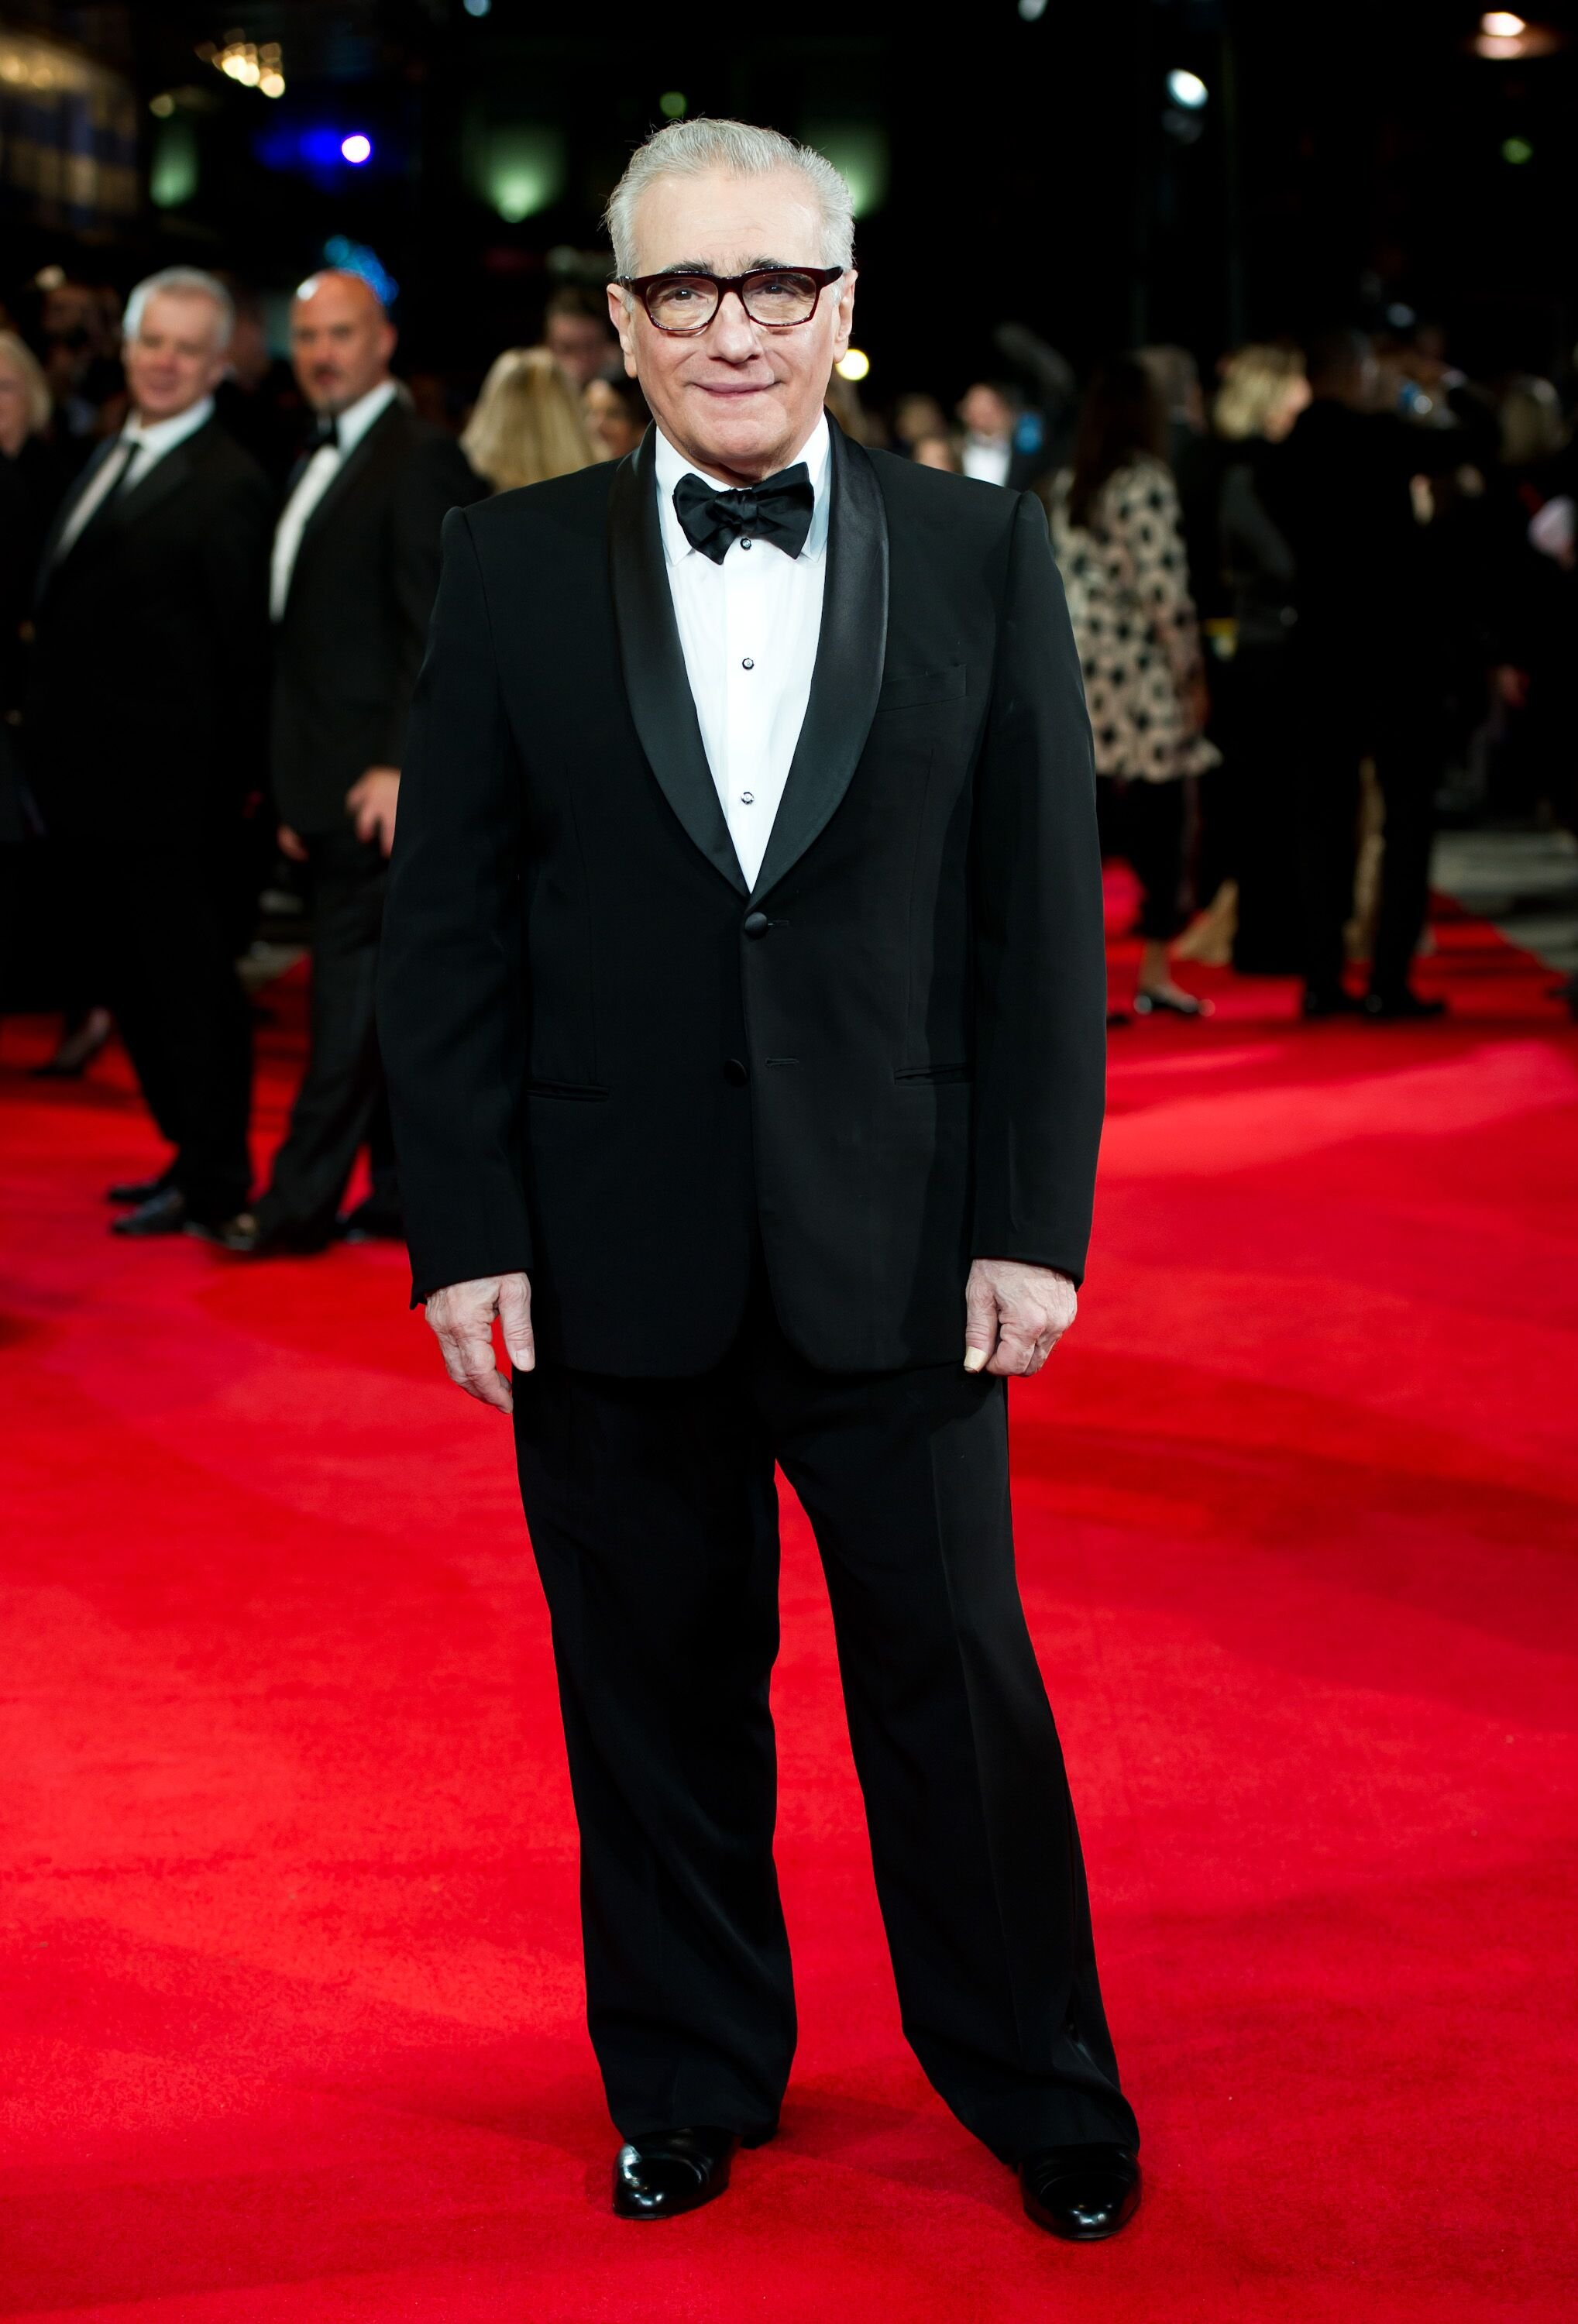 """Martin Scorsese attends The Royal film performance """"Hugo in 3D"""" at the Odeon Leicester Square. 